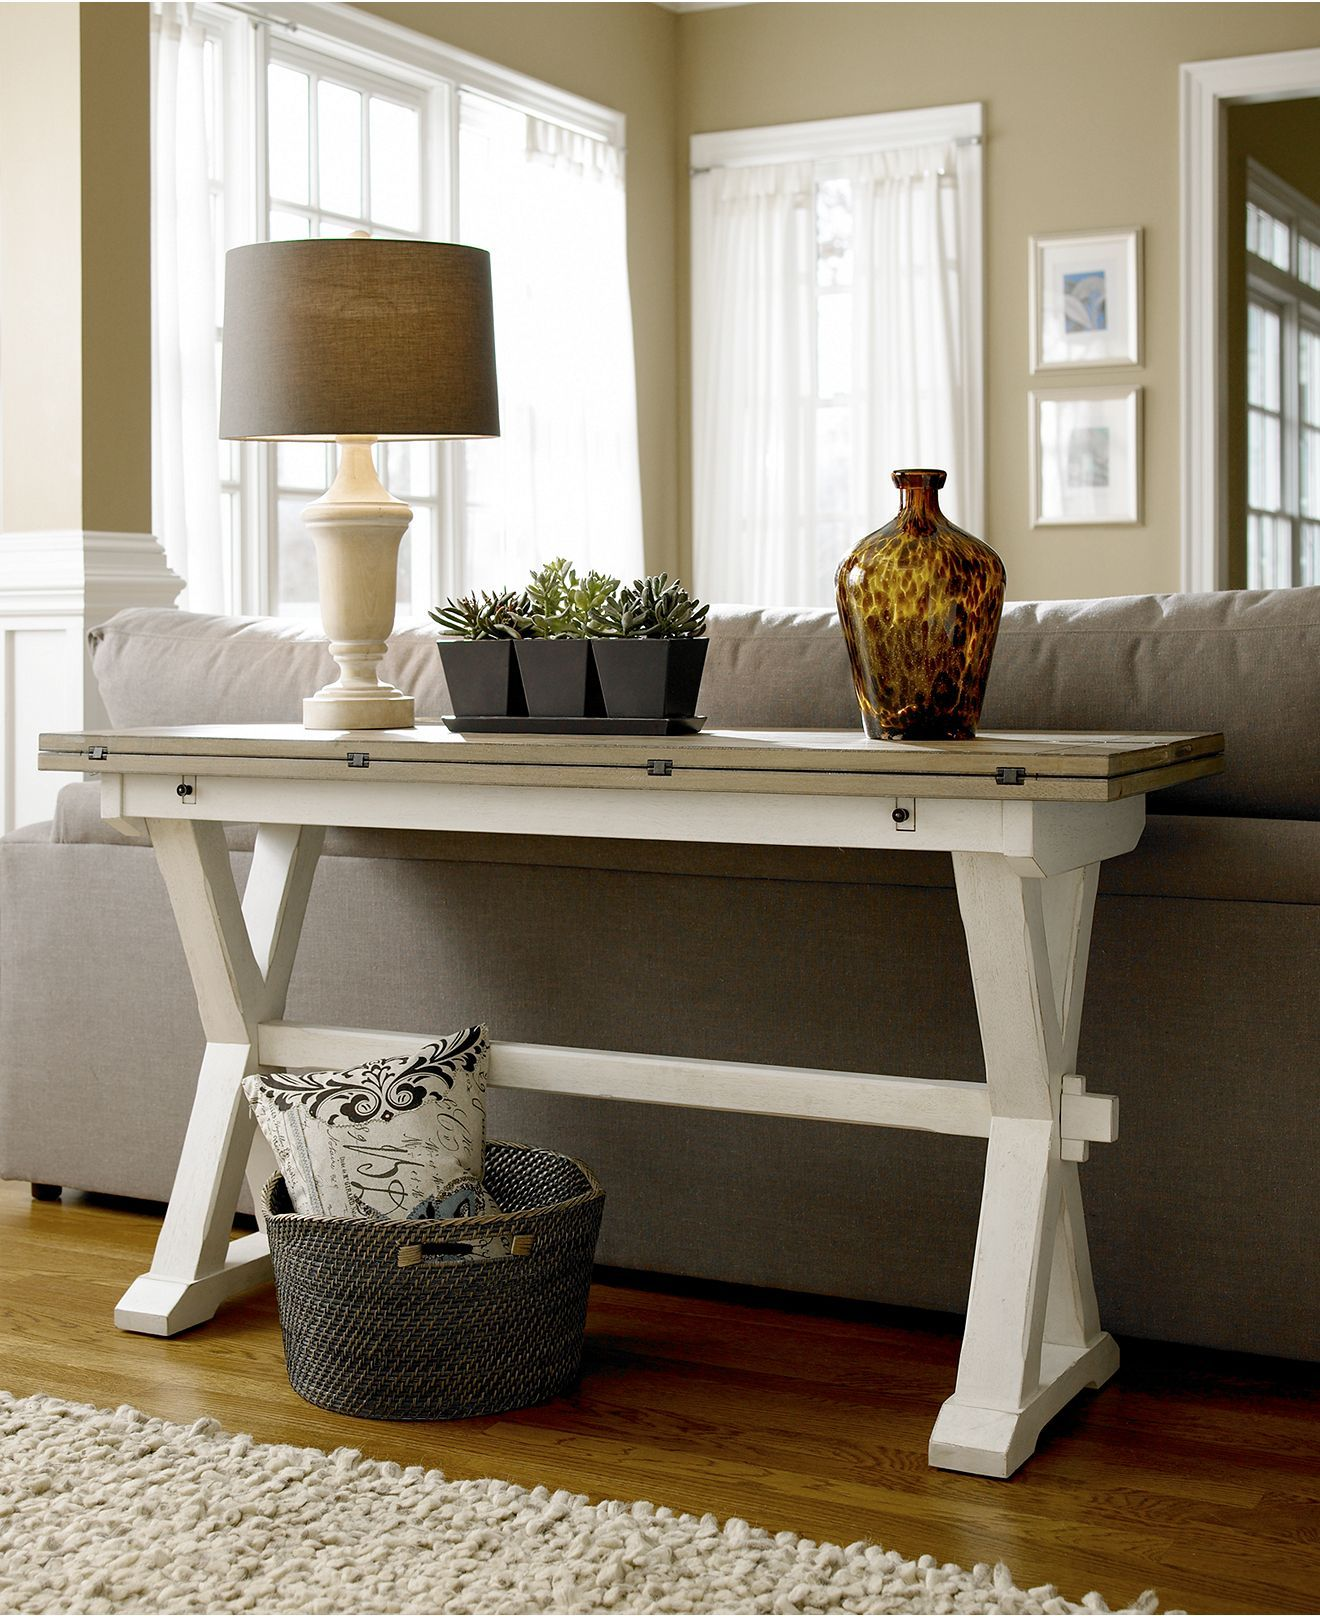 versatile console table with a fold out leaf - use as a desk